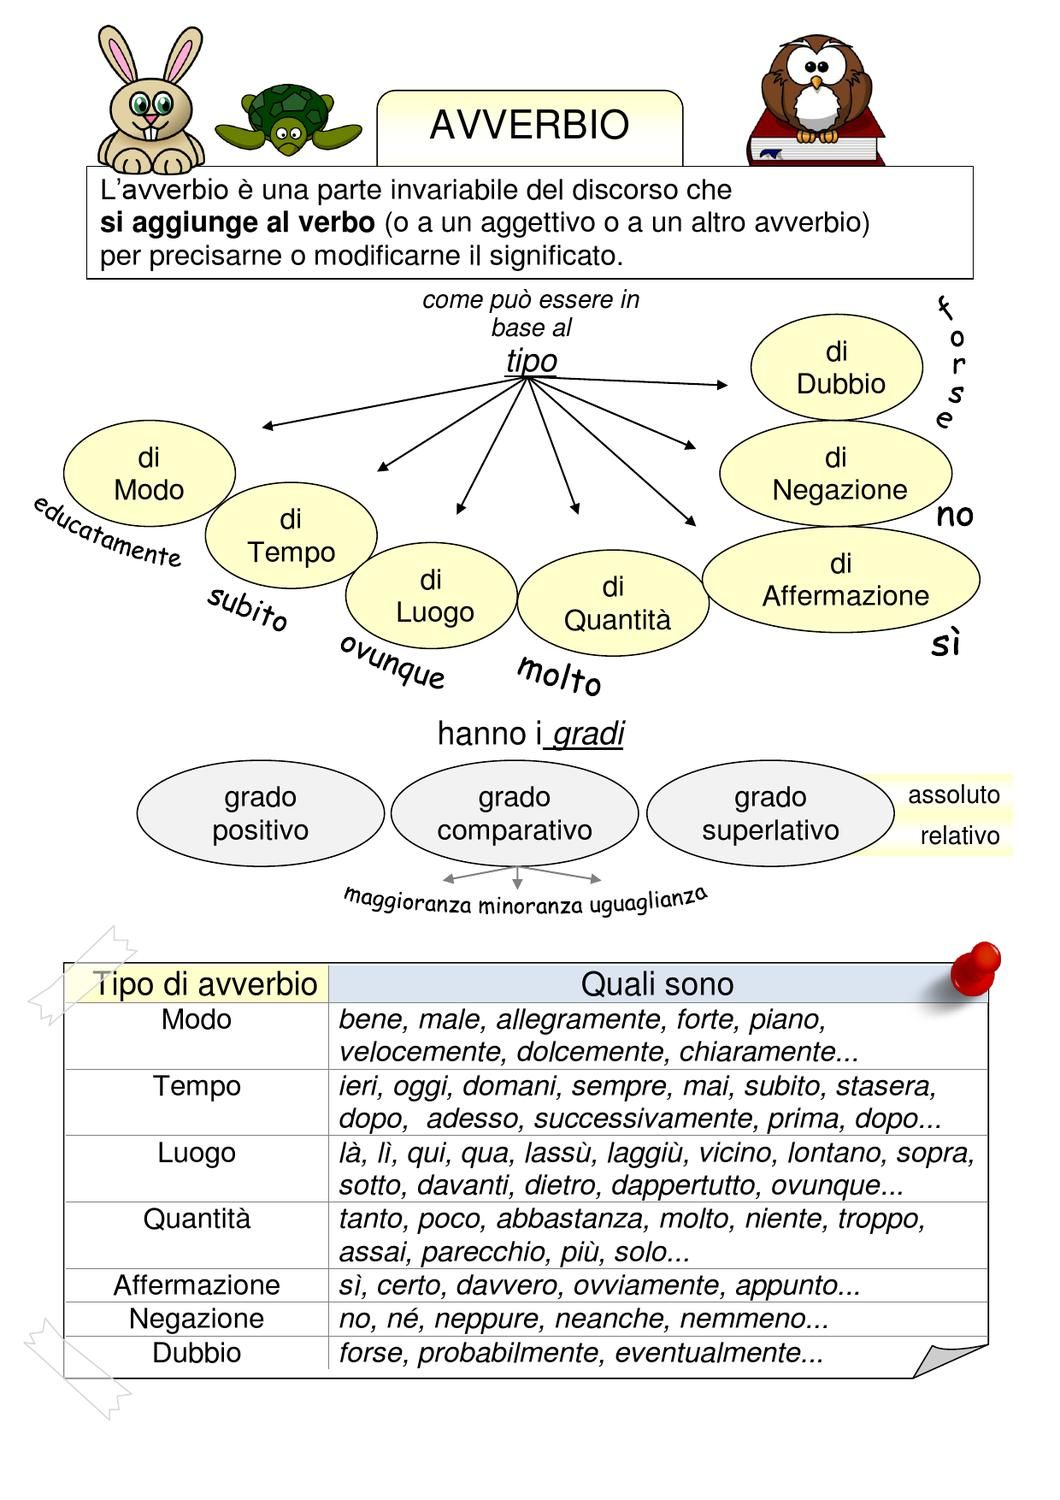 example of presentation for italian course universsity